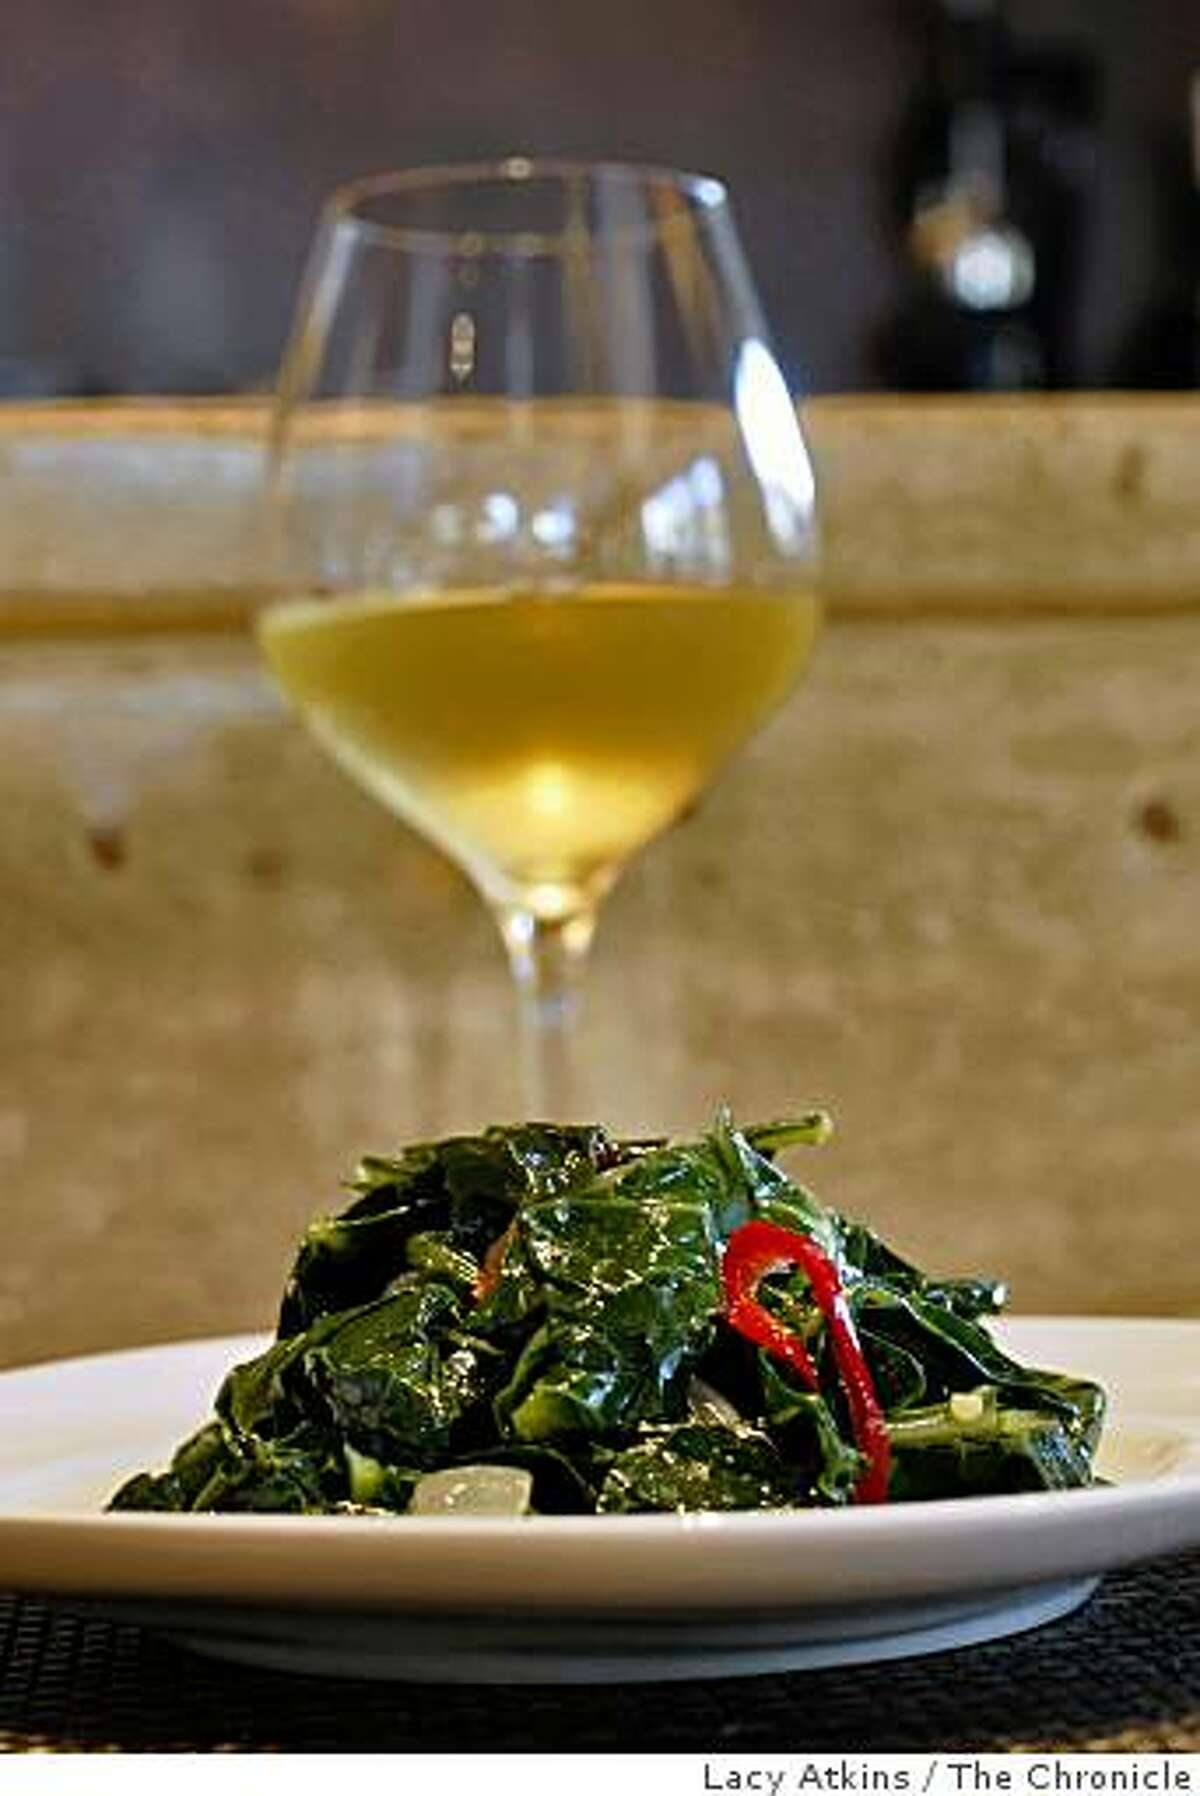 California Collards is one of the favorites of the customers at the new Pican restaurant, Wednesday June 24, 2009, in Oakland, Calif.